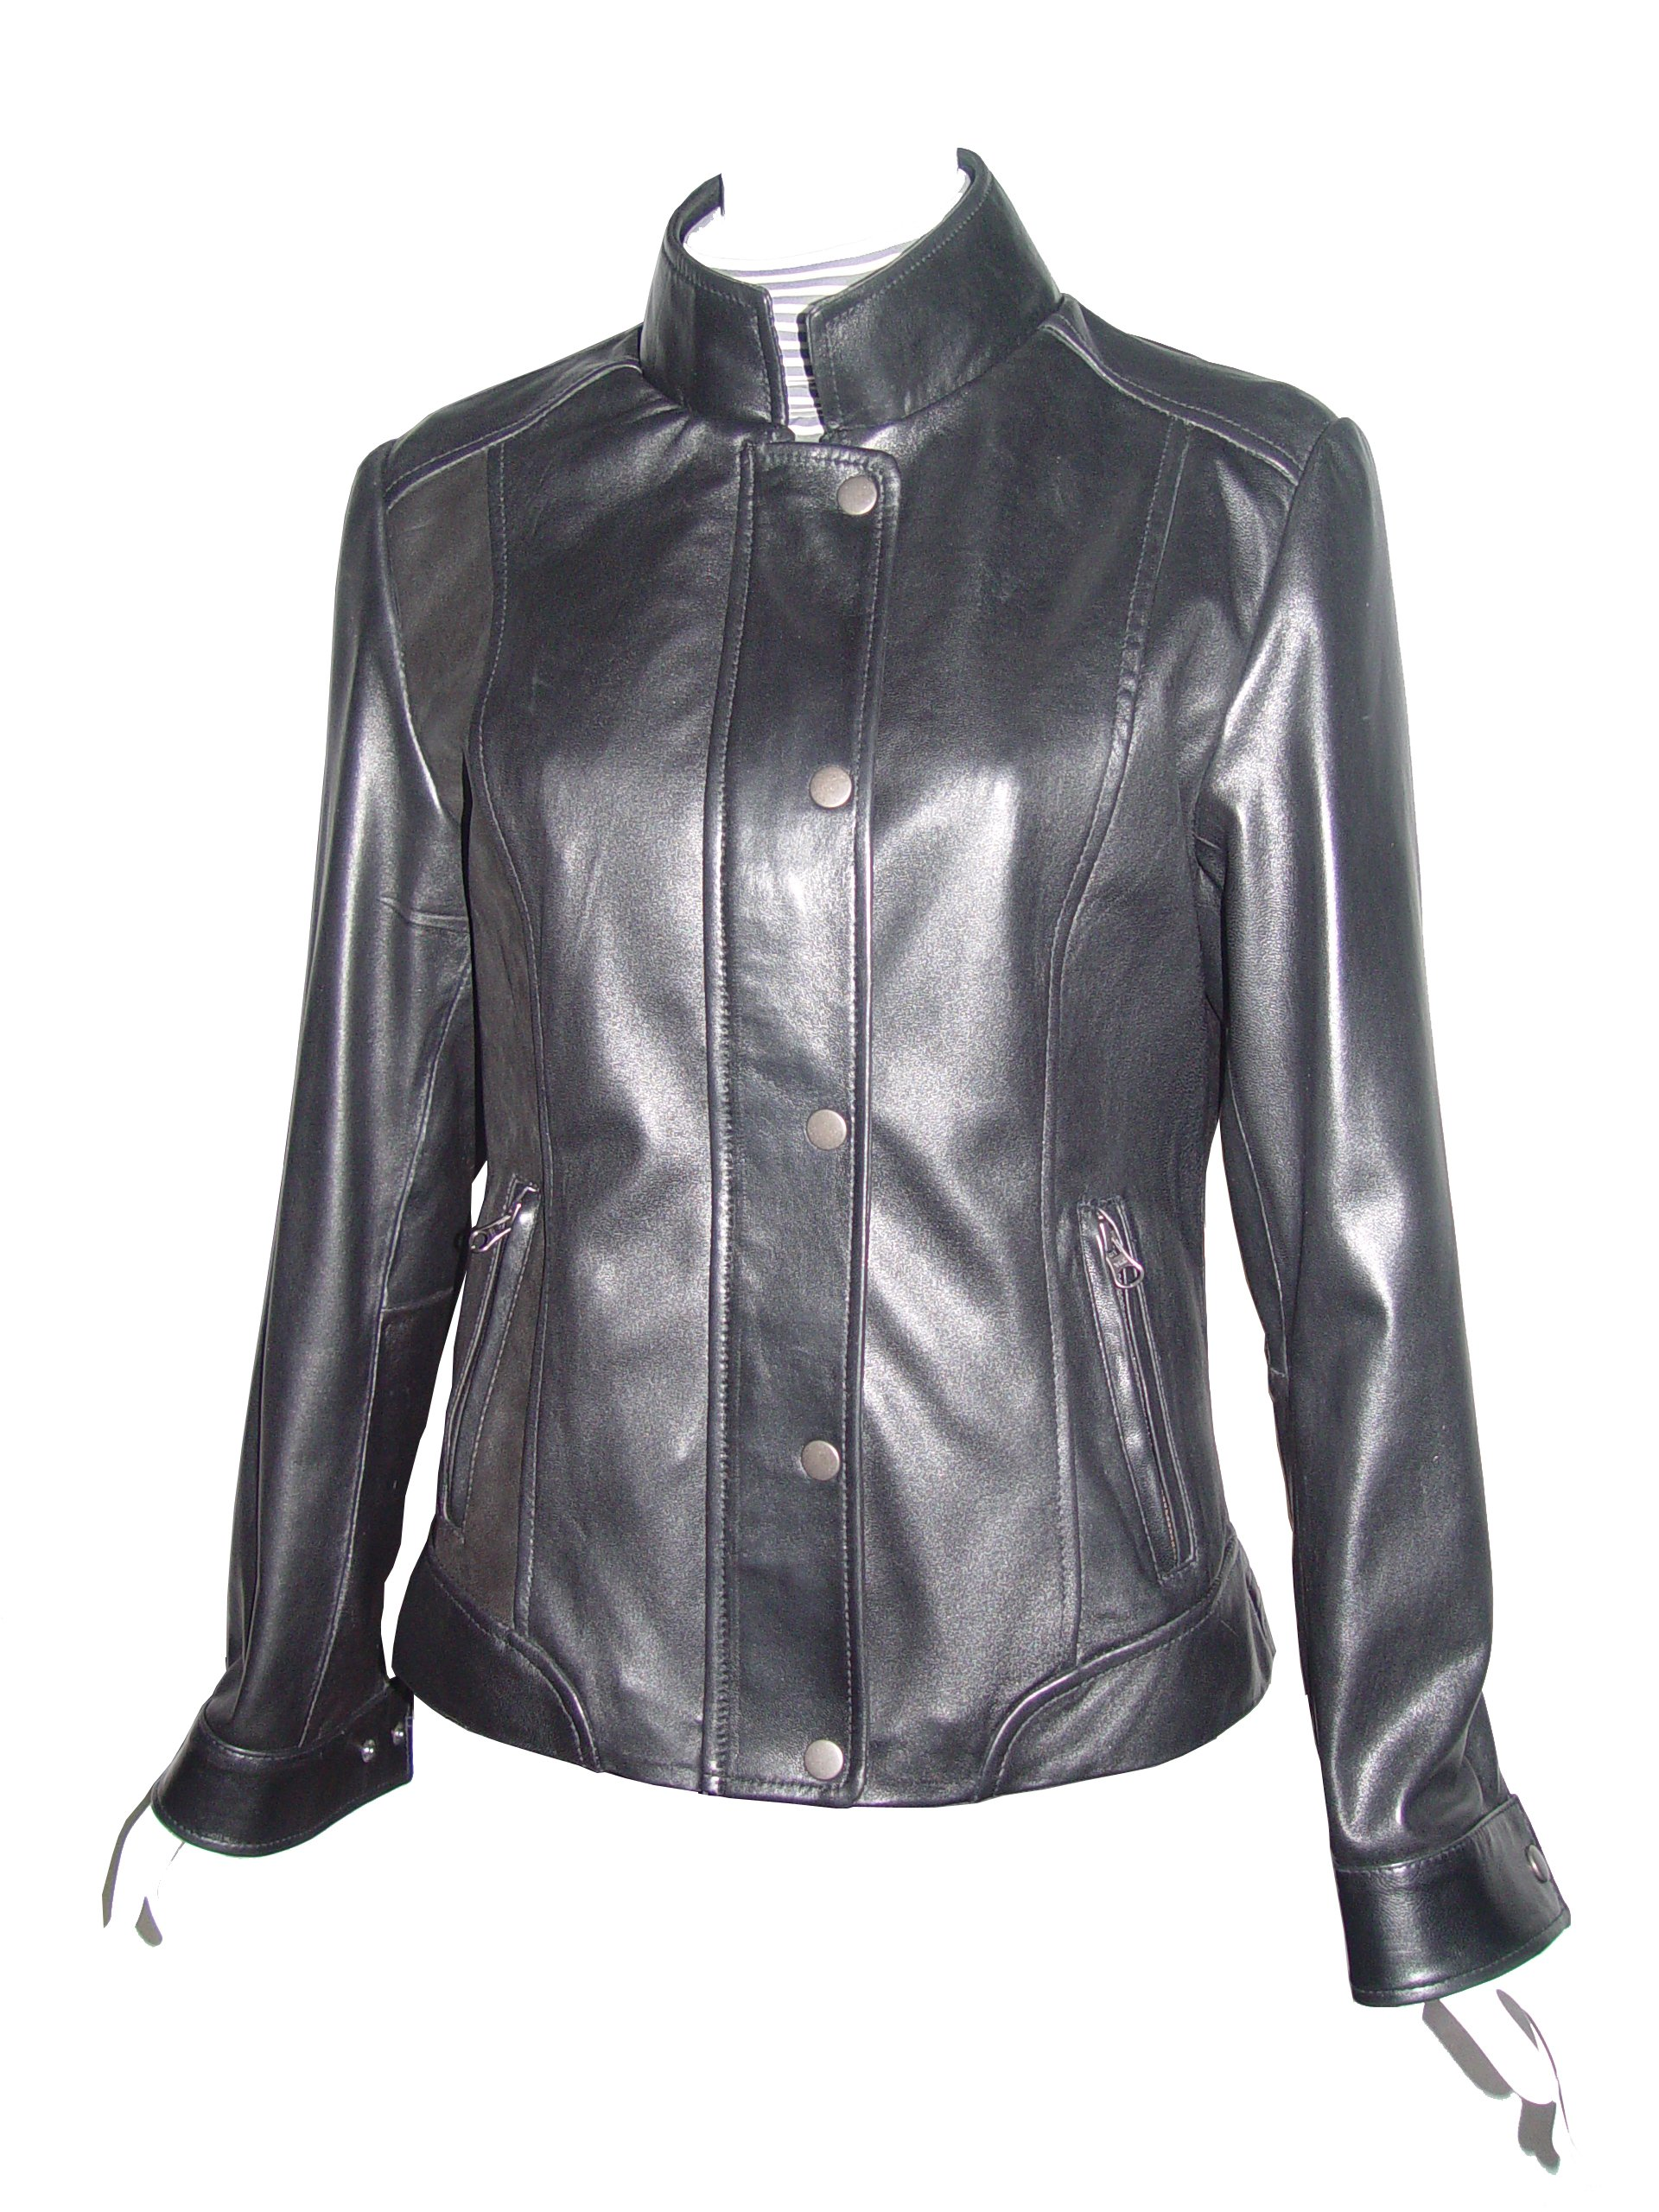 Nettailor 4089 Leather Clothing Womens Light Soft Lamb